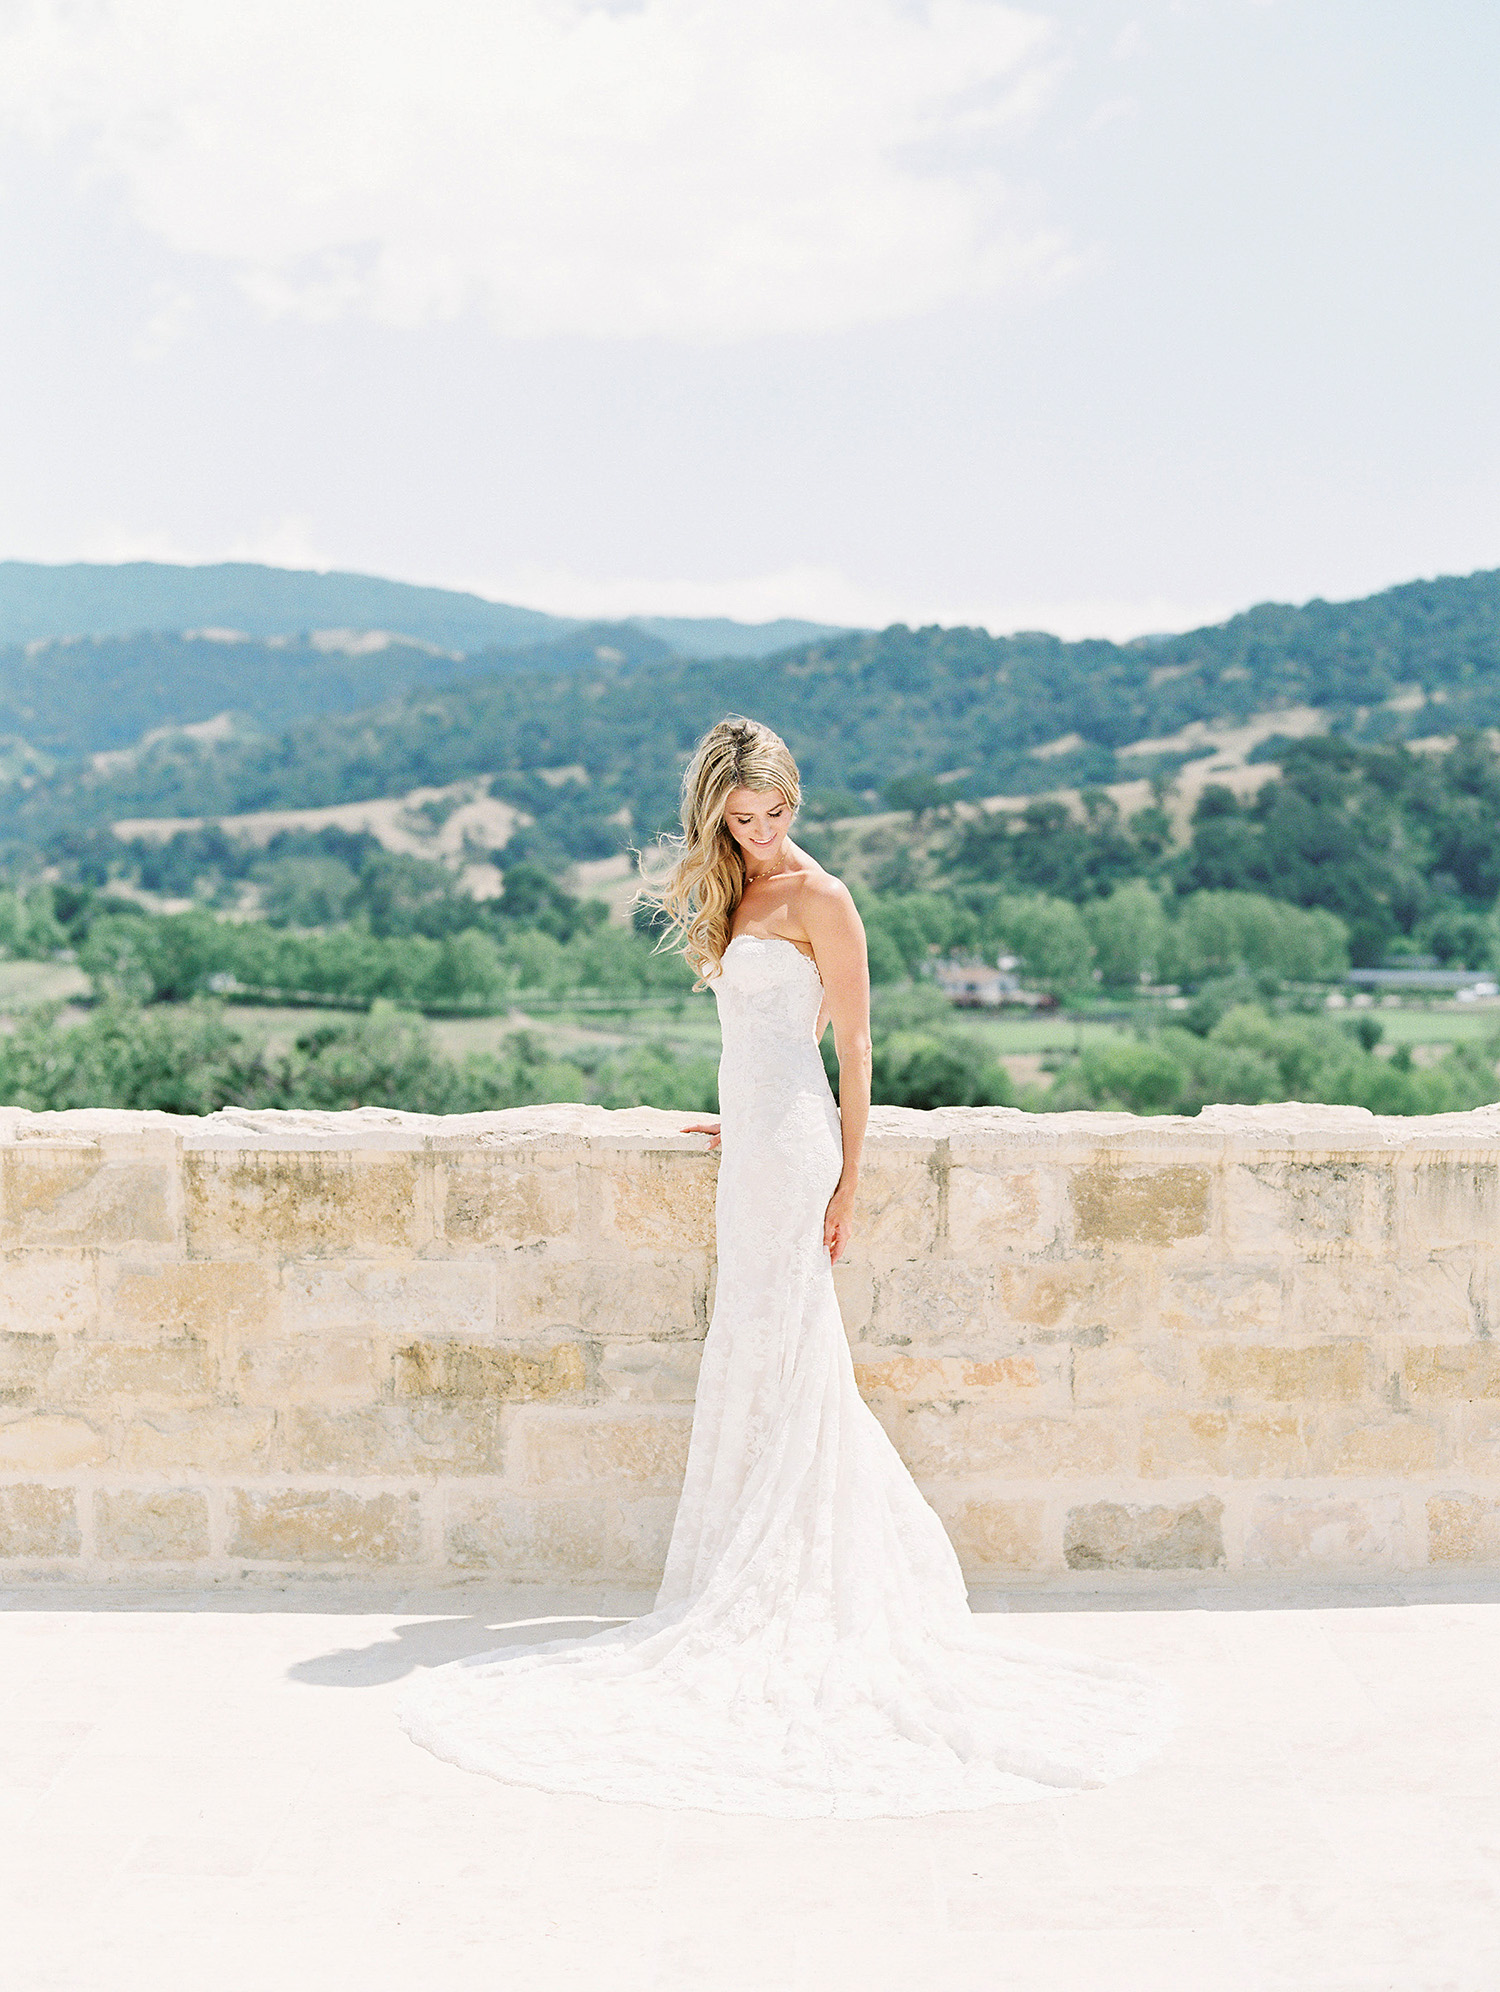 kati erik wedding bride dress